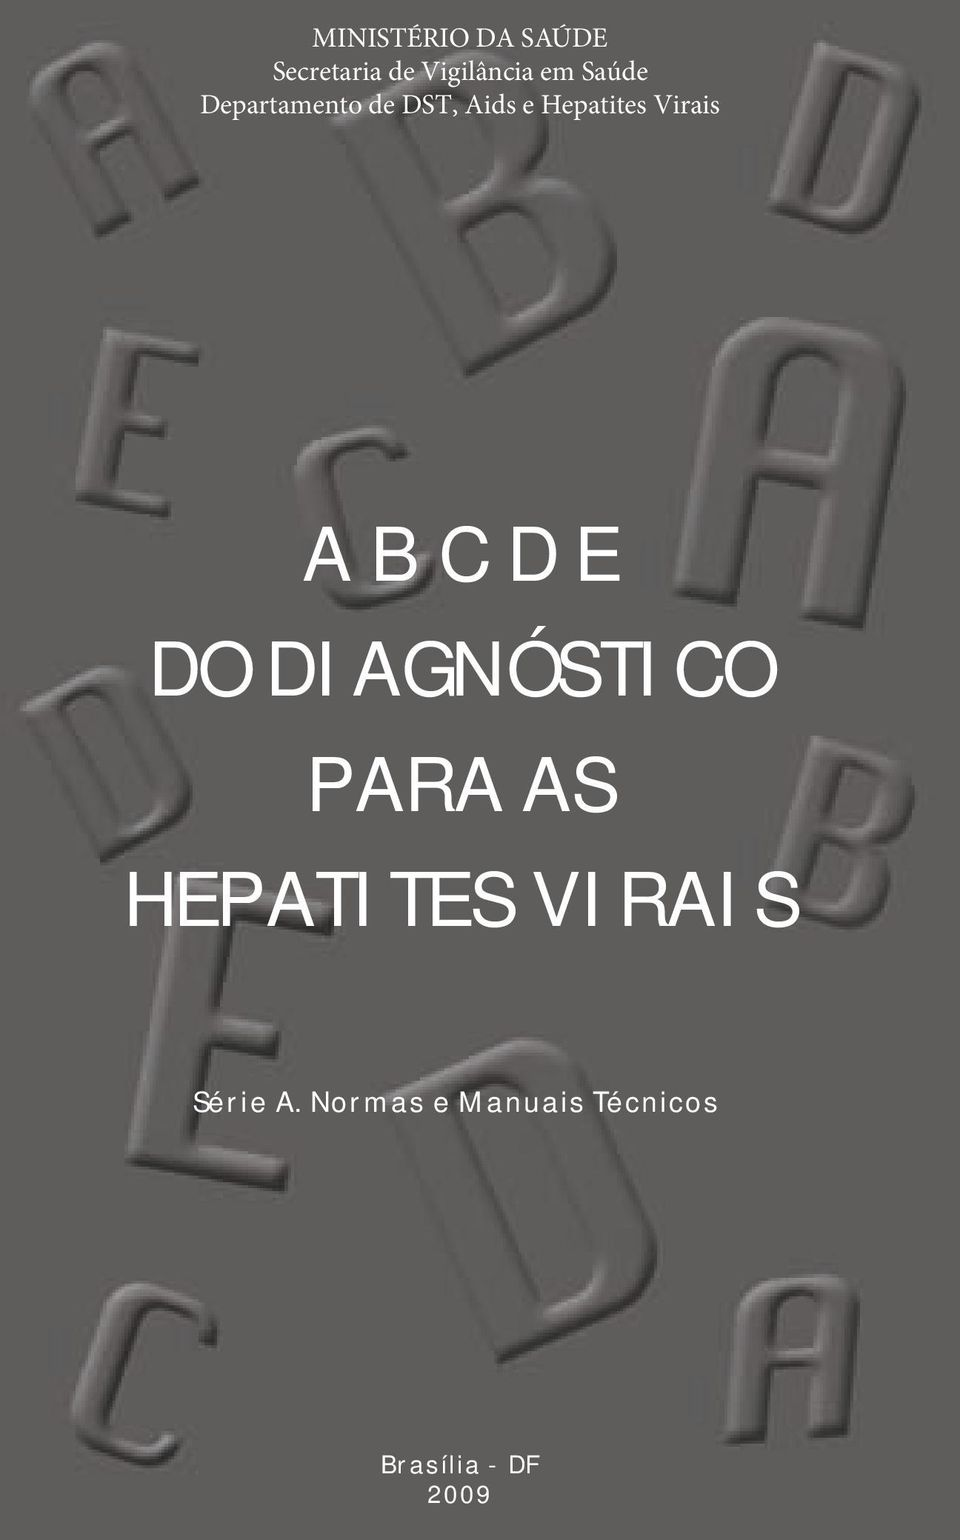 A B C D E DO DIAGNÓSTICO PARA AS HEPATITES VIRAIS